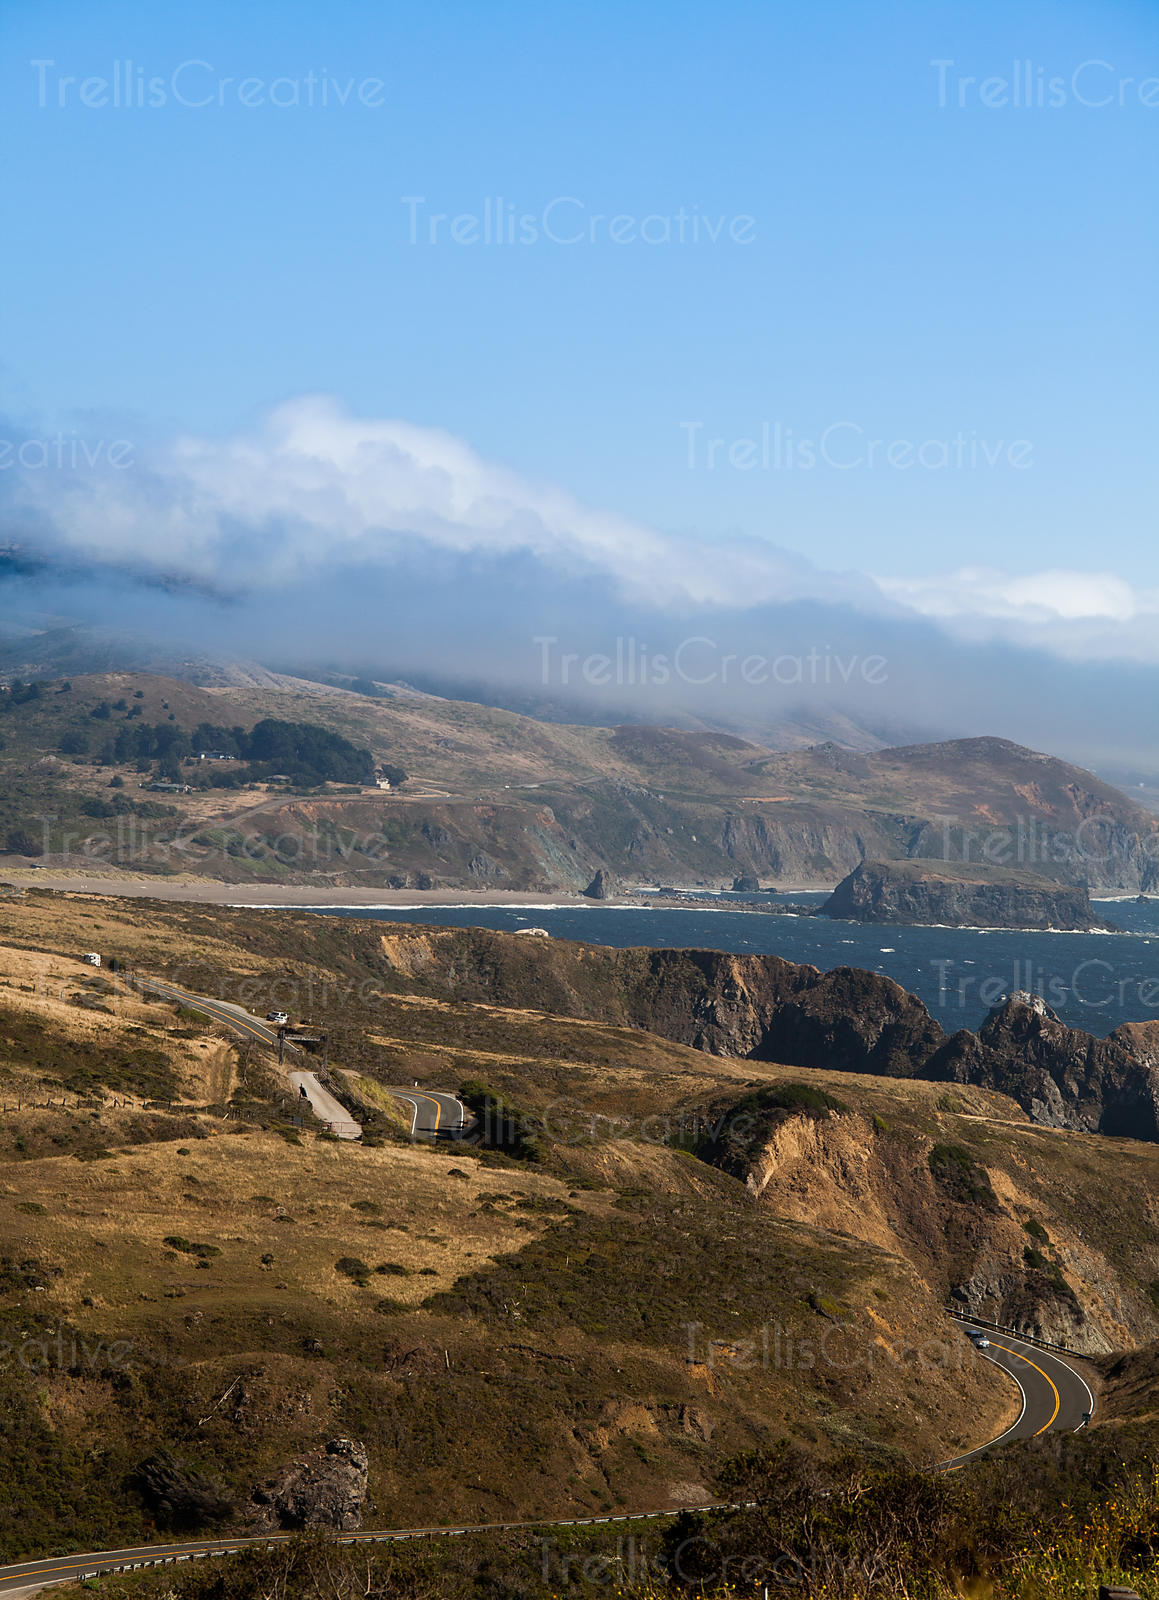 Fog lifts over the hills of the Great Highway along California's coastline.